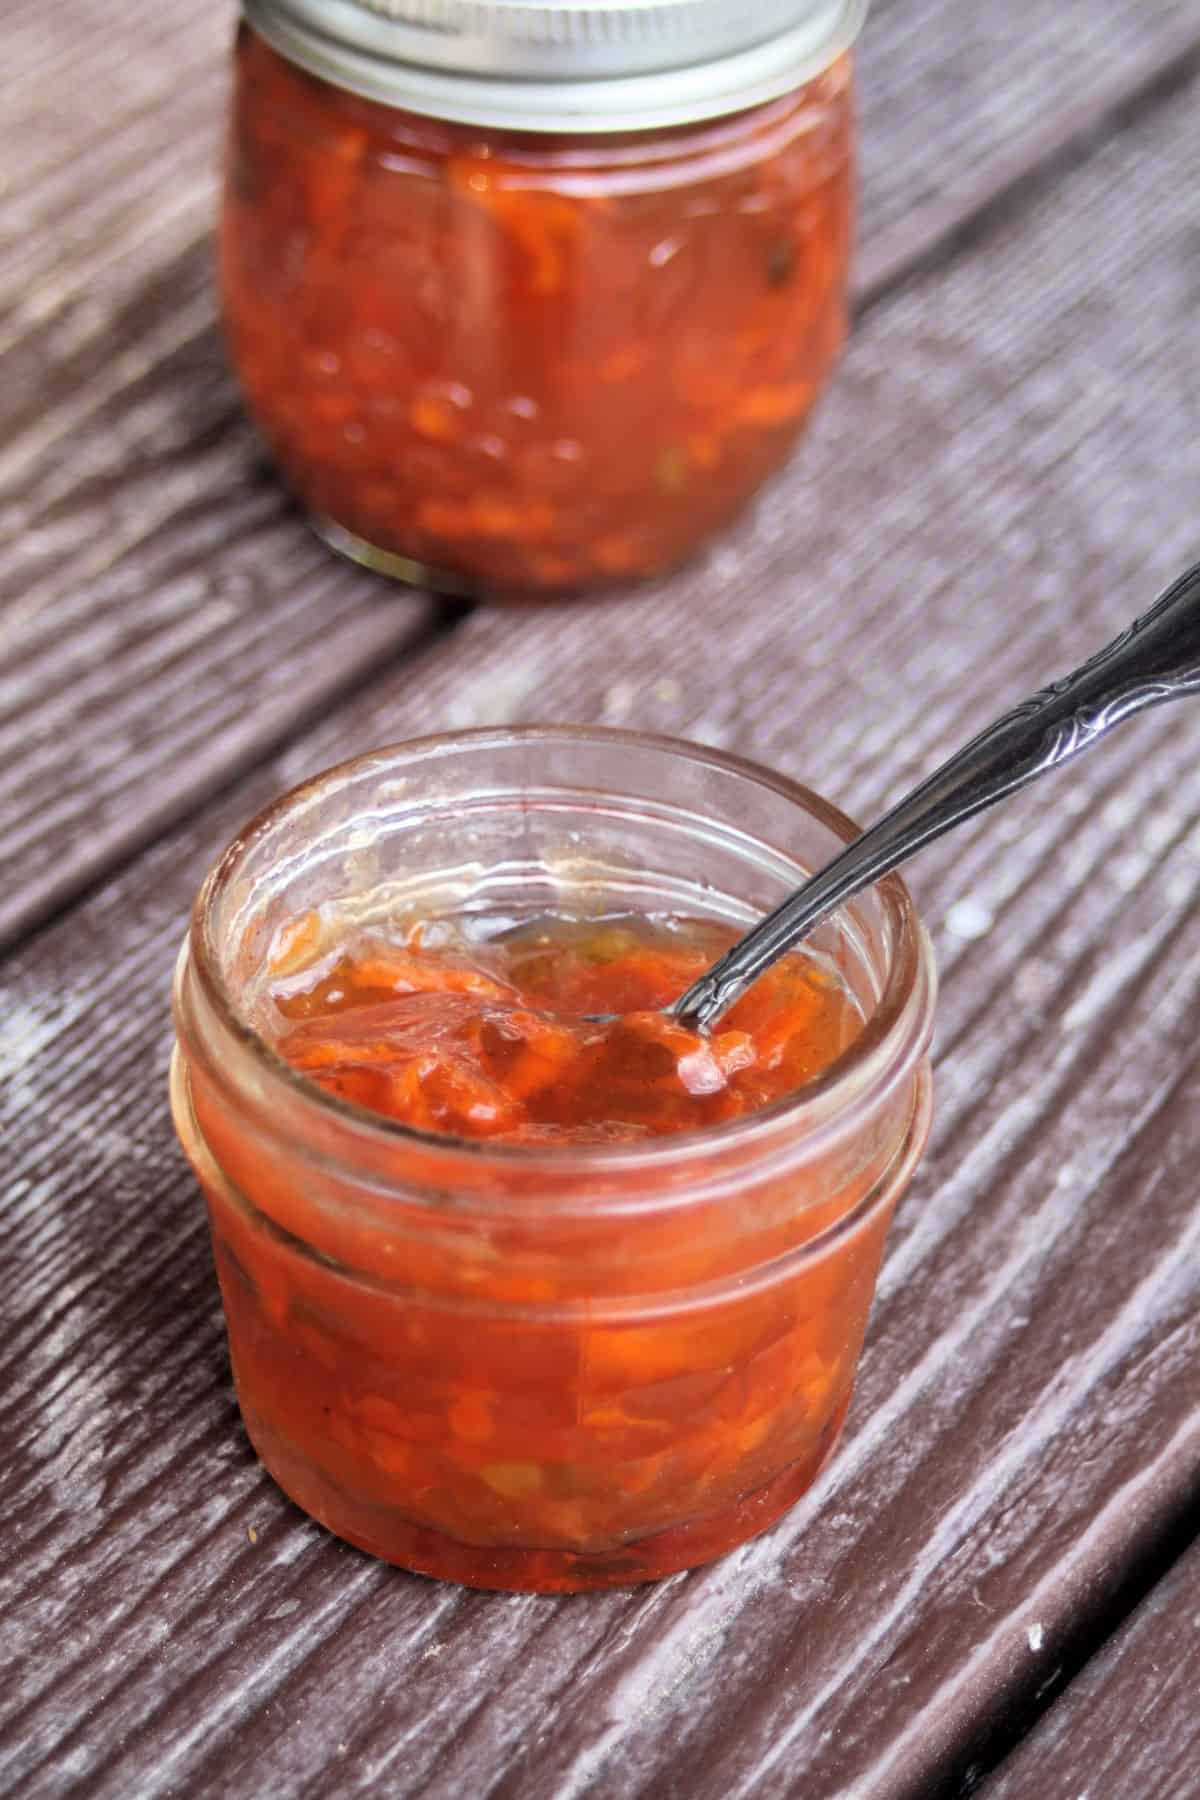 Carrot jam in an open a jar with a spoon inside it, sitting in front of a sealed jar.